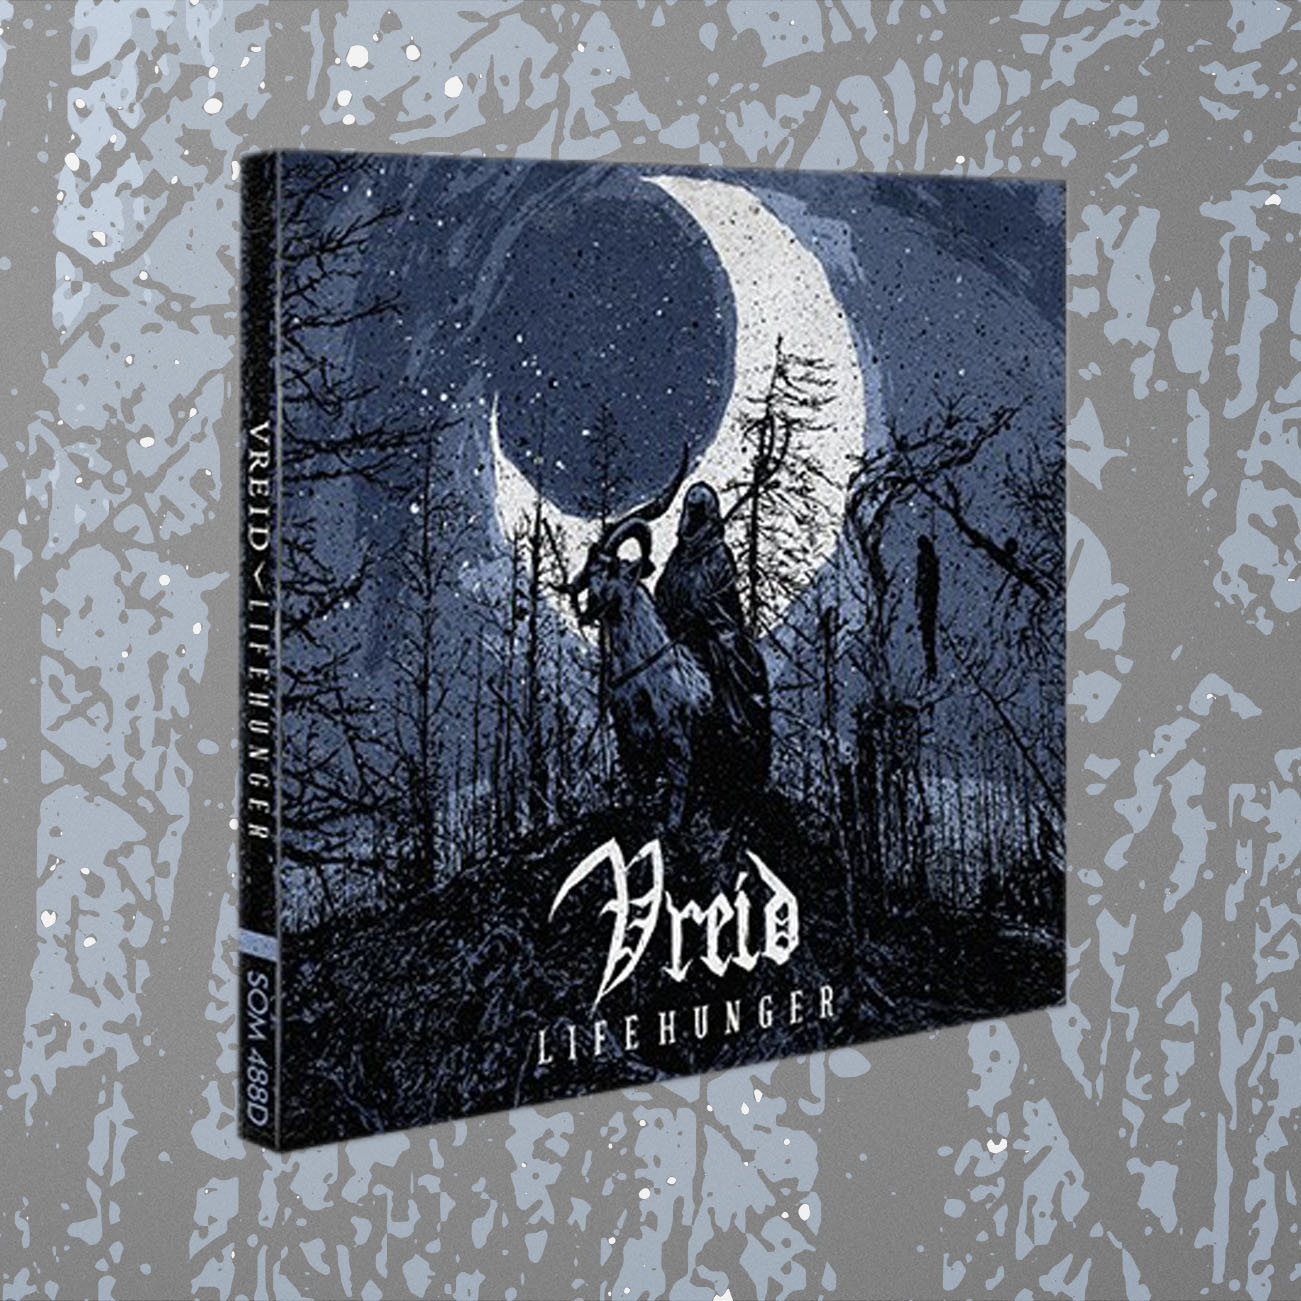 Vreid - 'Lifehunger' Digipak CD - Vreid